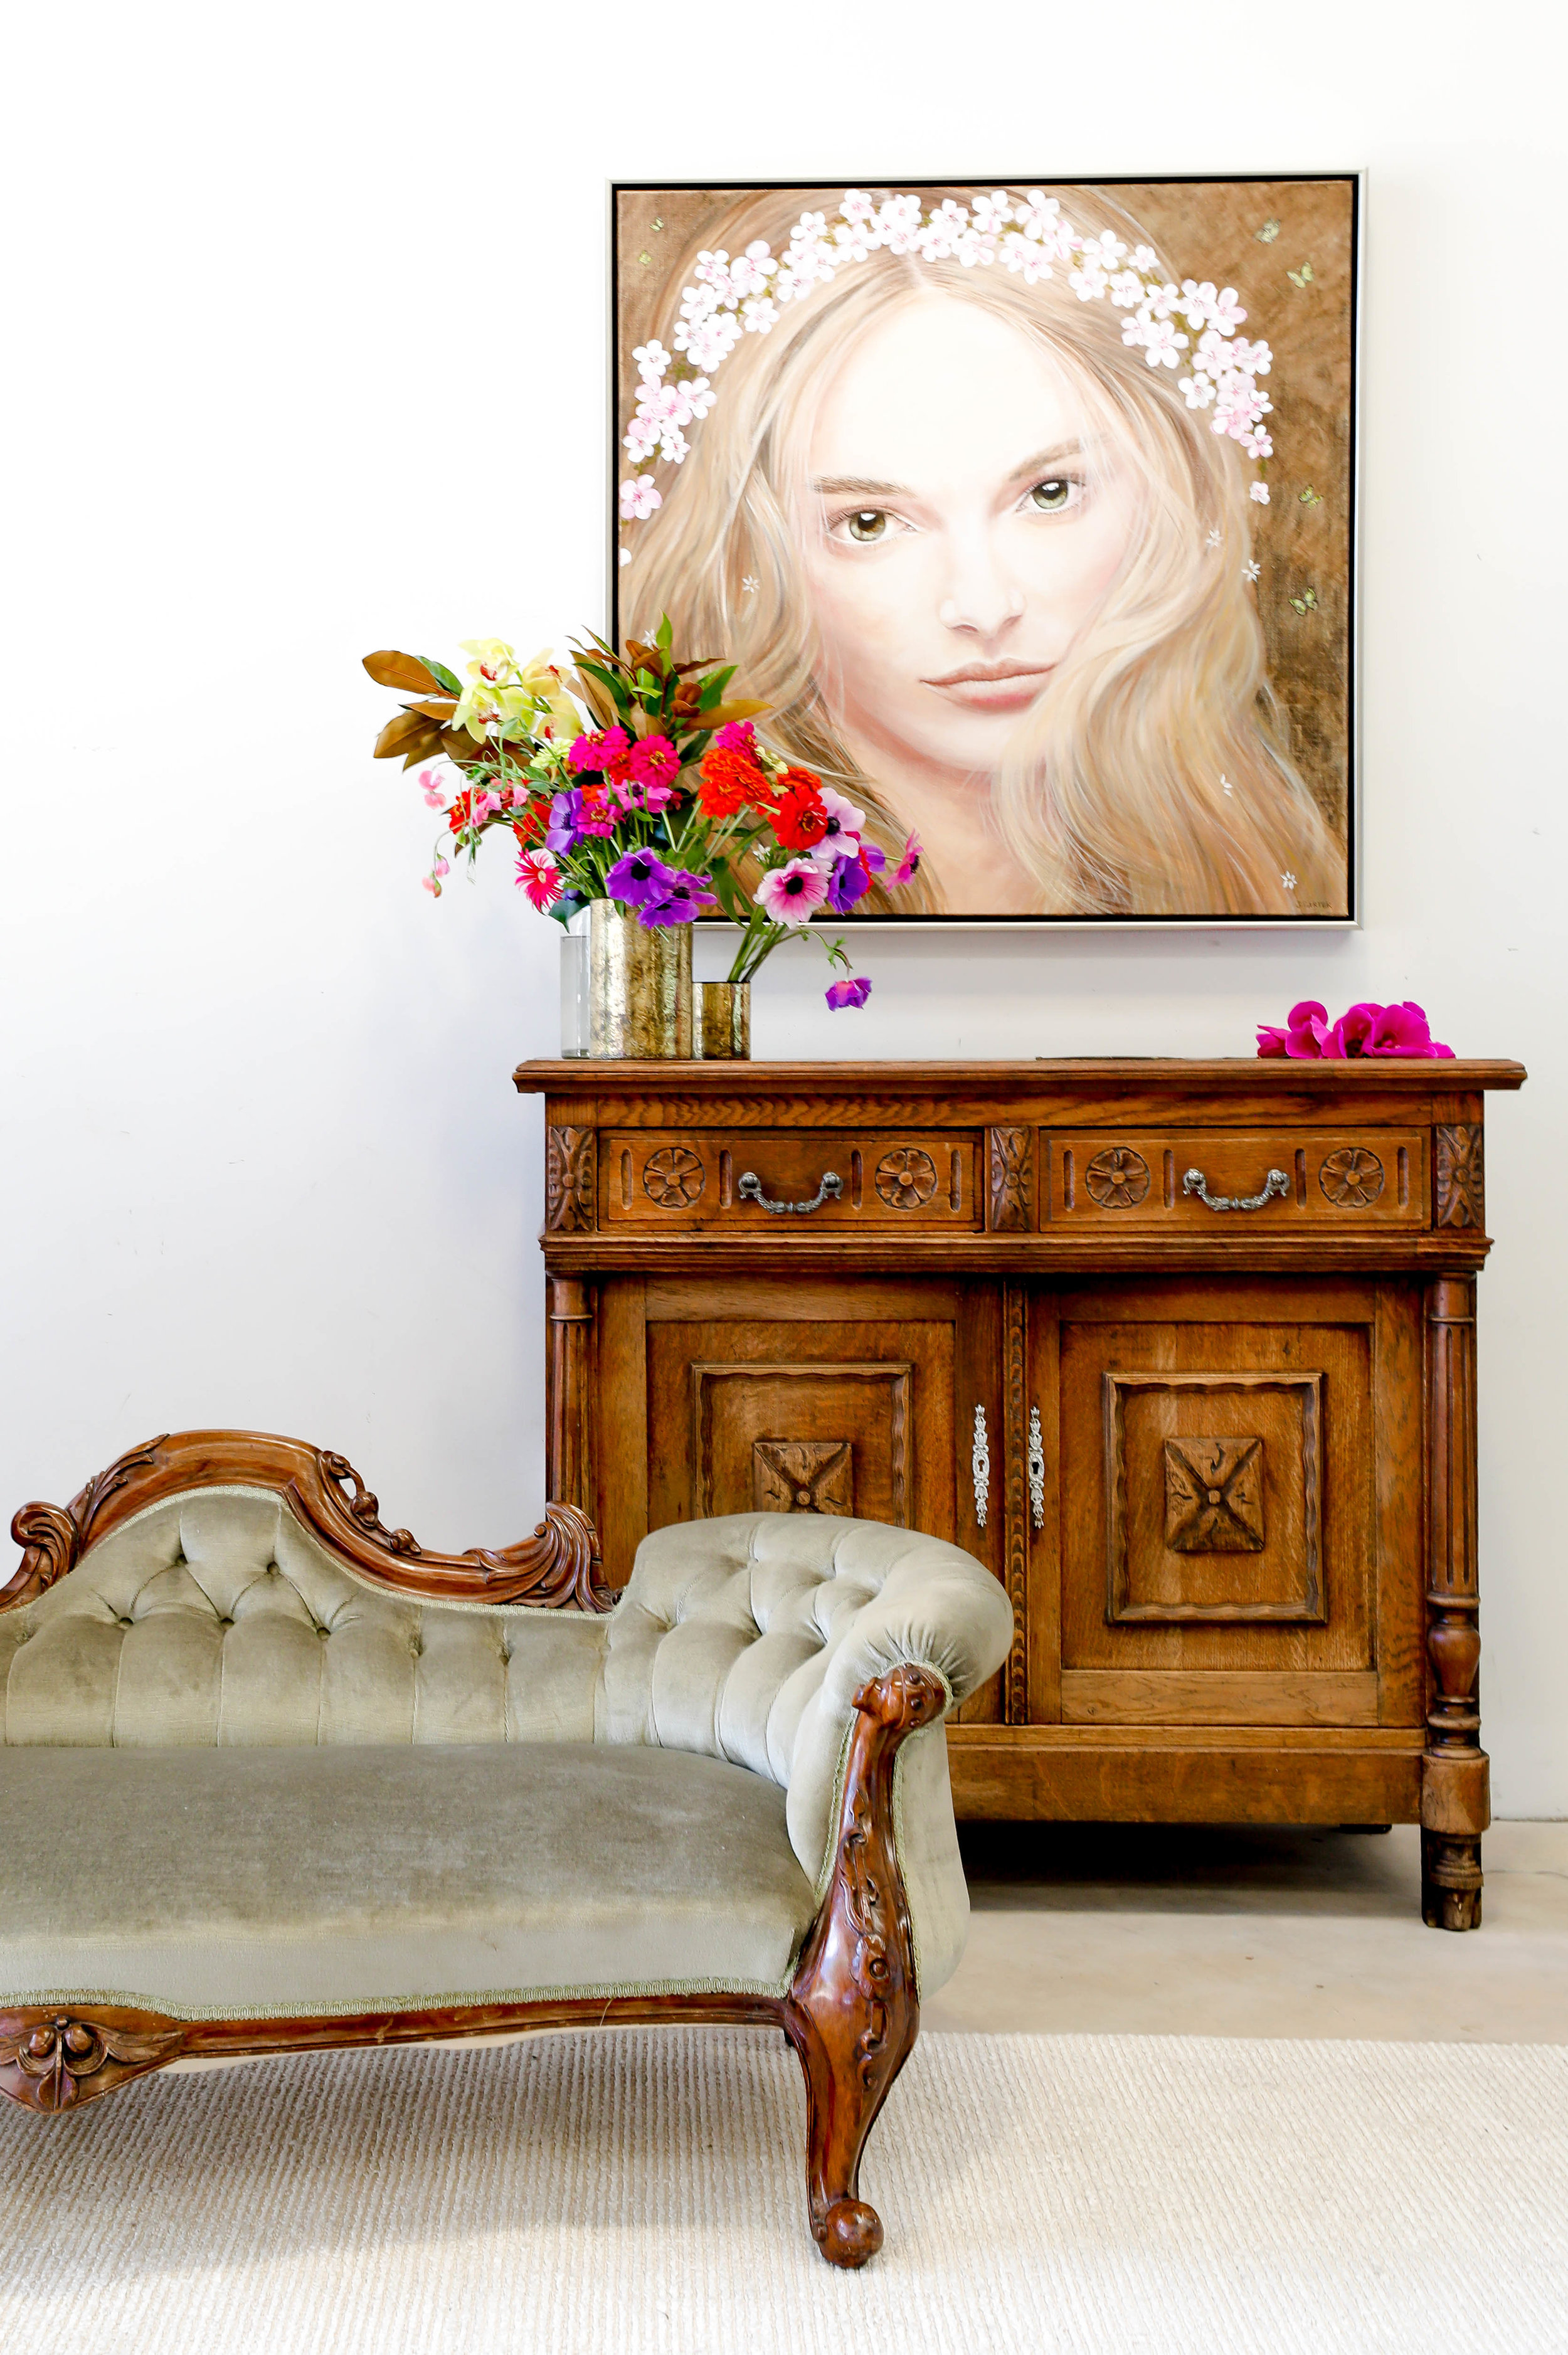 The_Find_Antiques_Chaise_Lounge_French_Provincial_Buffet_FLORAL_springgoddess_tightshot.jpg